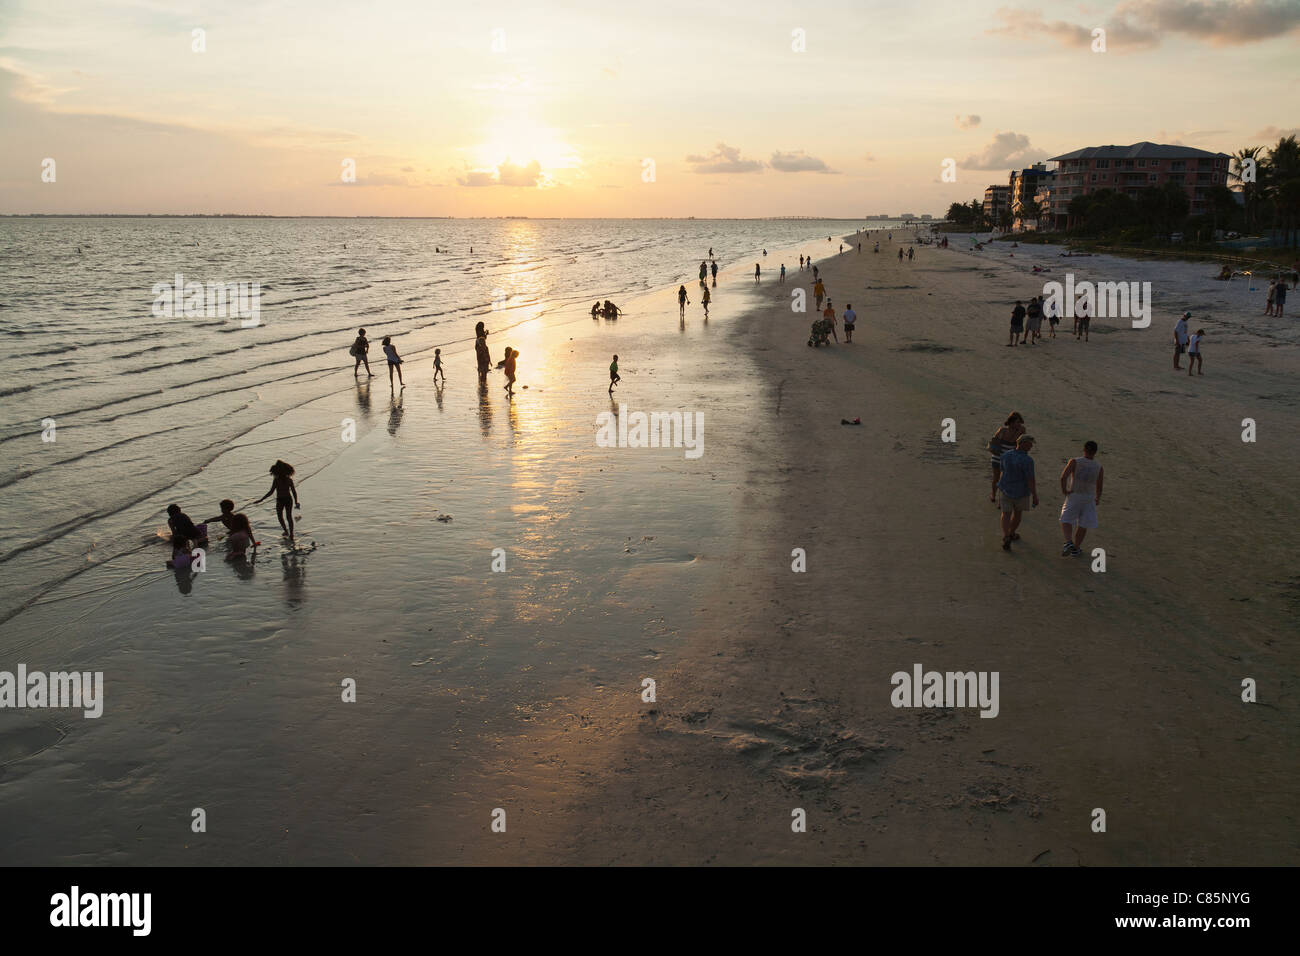 People at the beach at sunset fort myers beach florida usa people at the beach at sunset fort myers beach florida usa geenschuldenfo Gallery